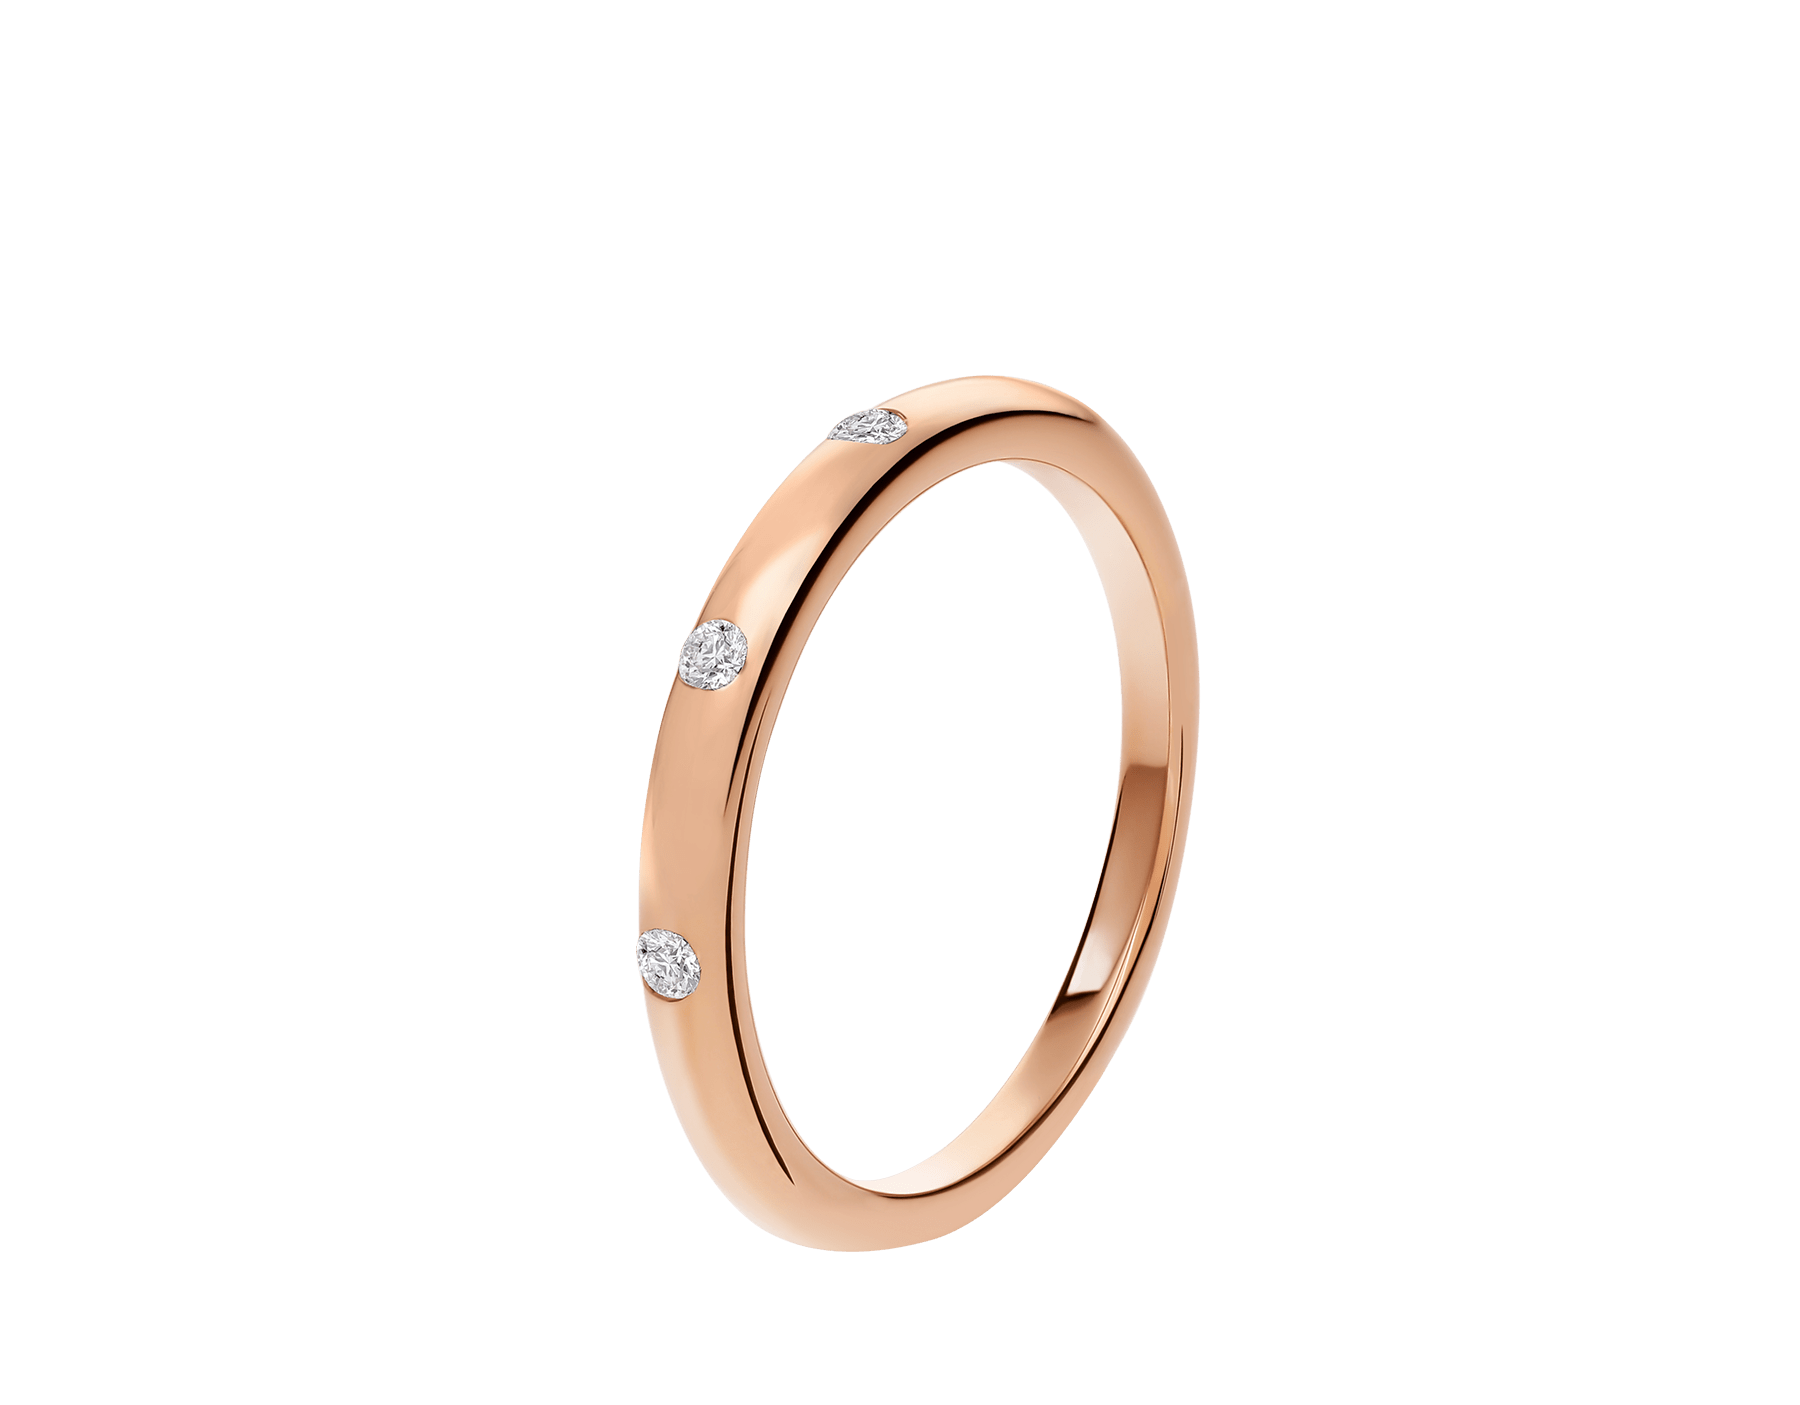 Fedi Wedding Band in 18 kt rose gold with three diamonds AN857546 image 1